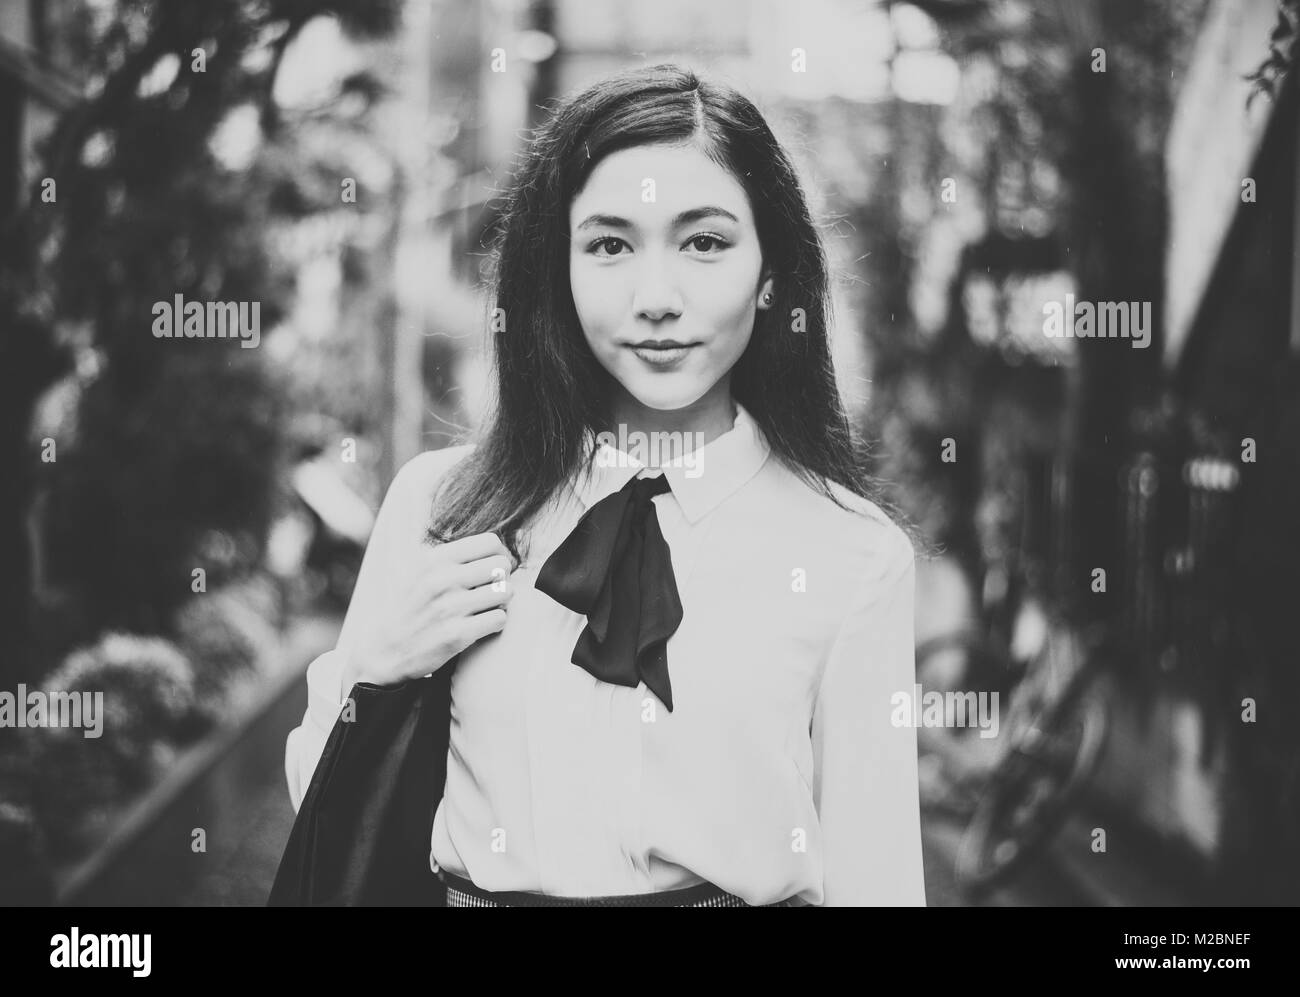 Beautiful japanese girl walking in tokyo concept about teenagers and school stock image